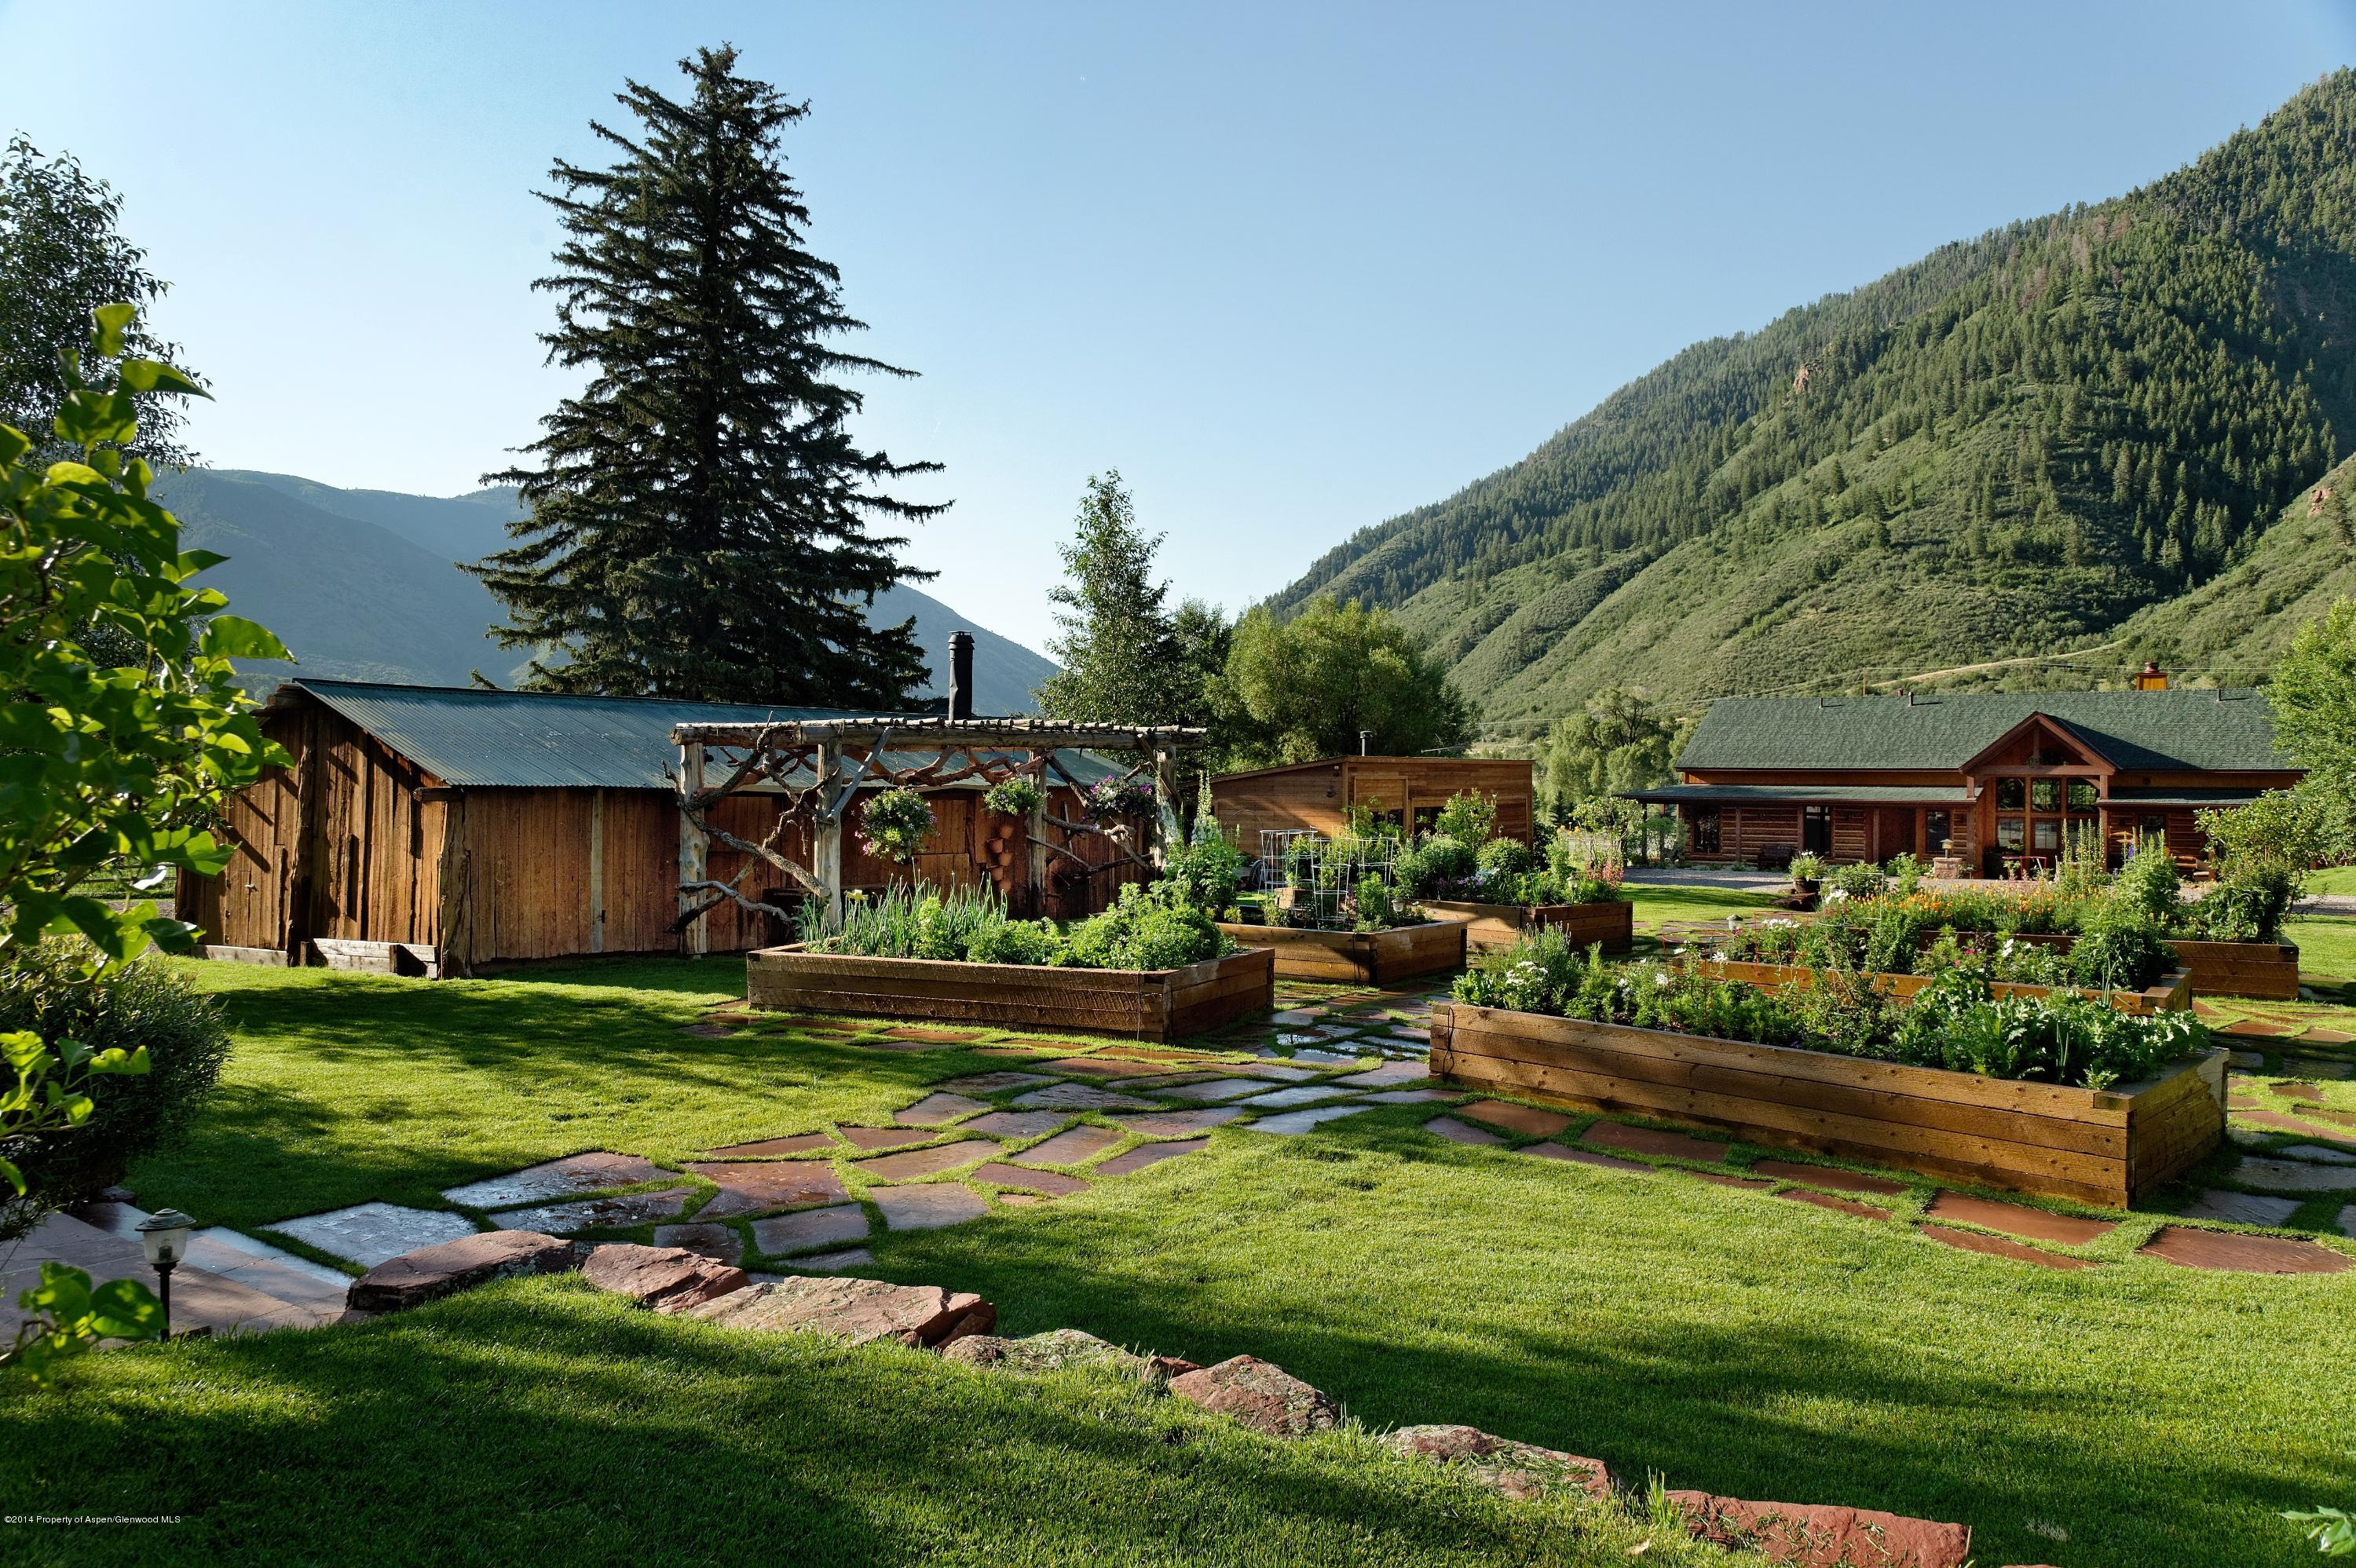 MLS# 135595 - 63 - 50 E River Ranch Road, Snowmass, CO 81654